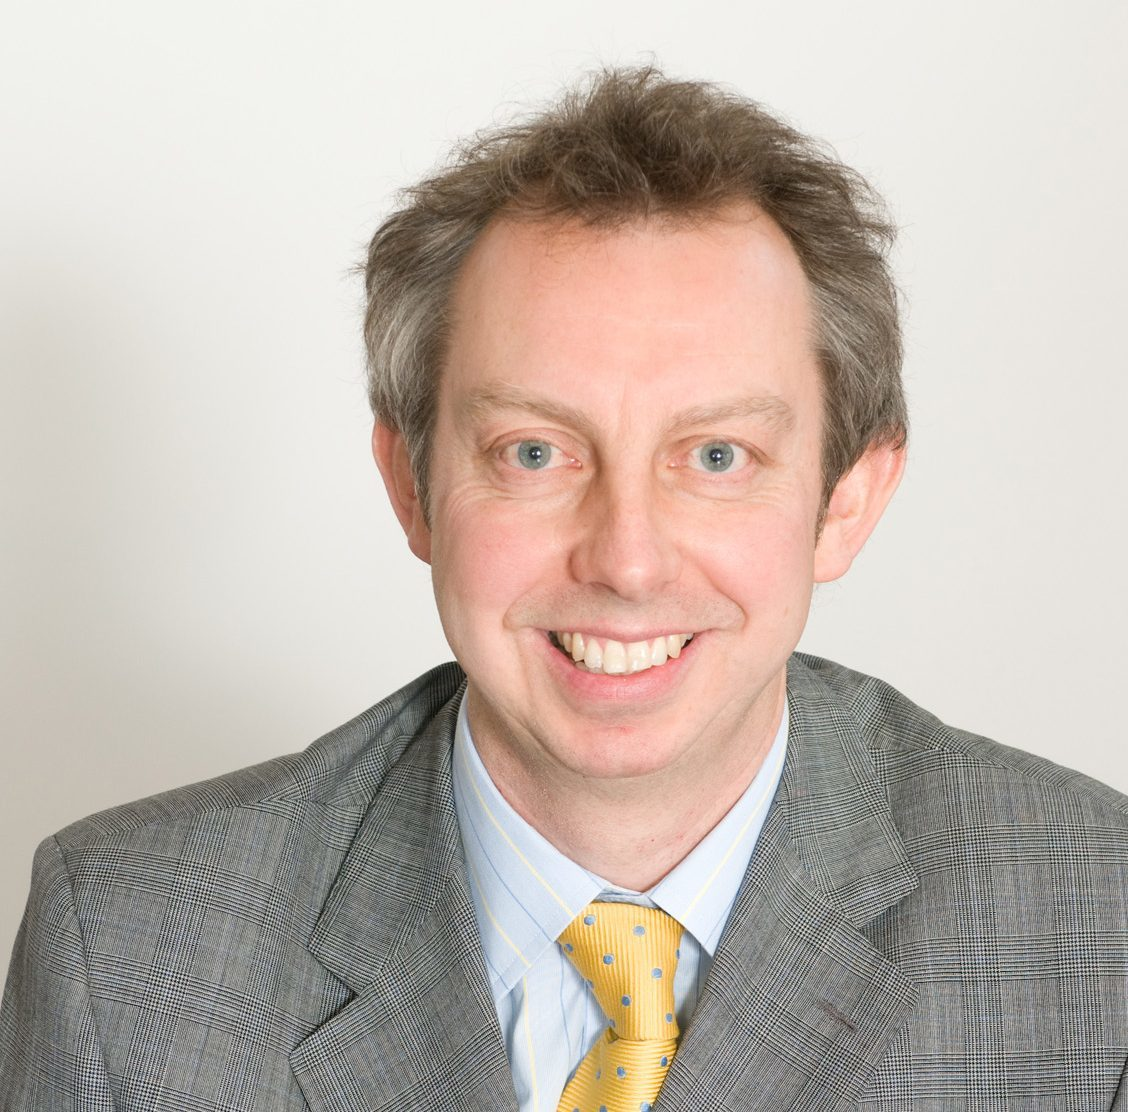 Ian McPherson, head of upstream oil and gas services at Anderson Anderson Brown